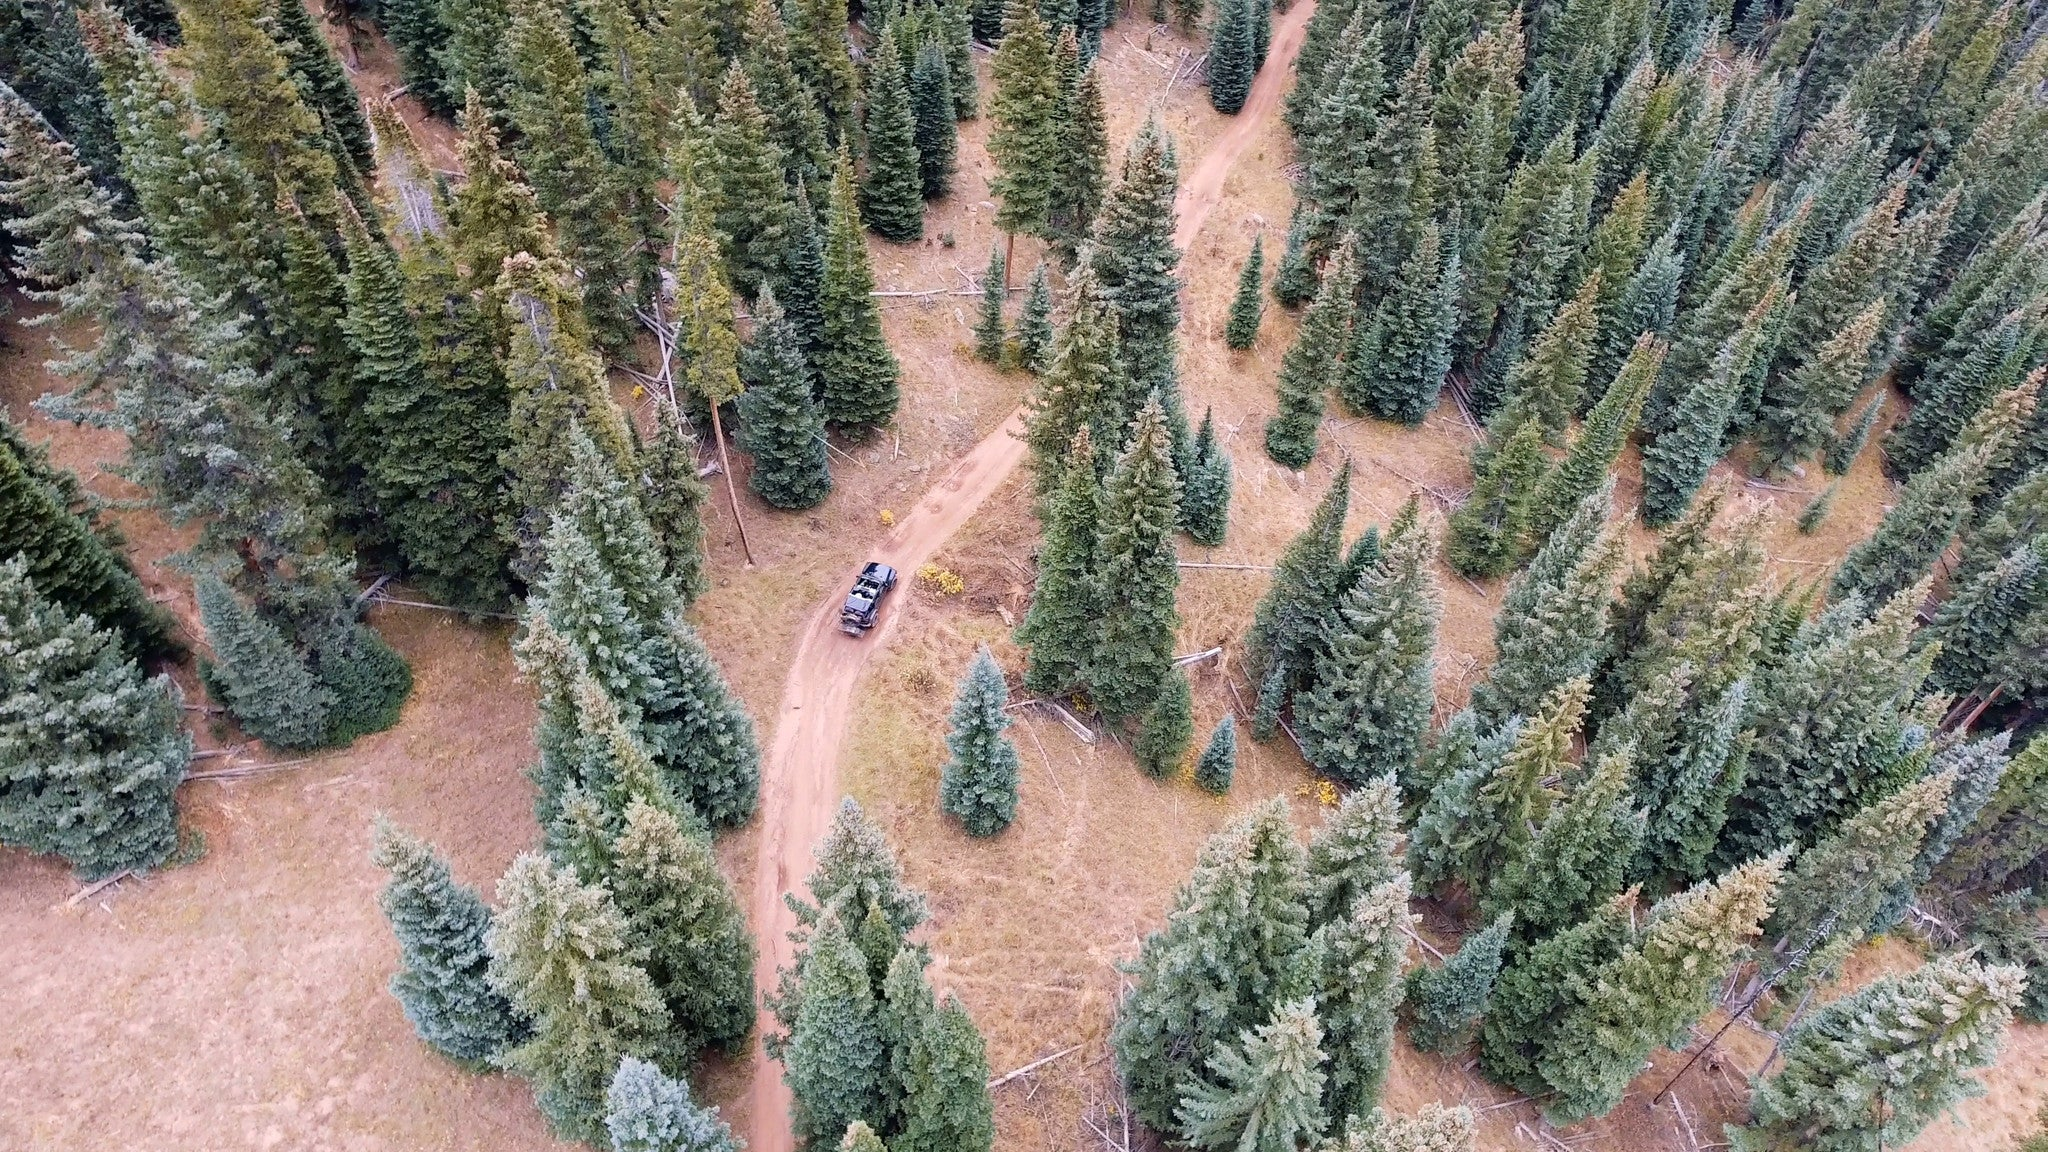 Free 4K stock video of a Jeep Wrangler off roading through forest stock footage